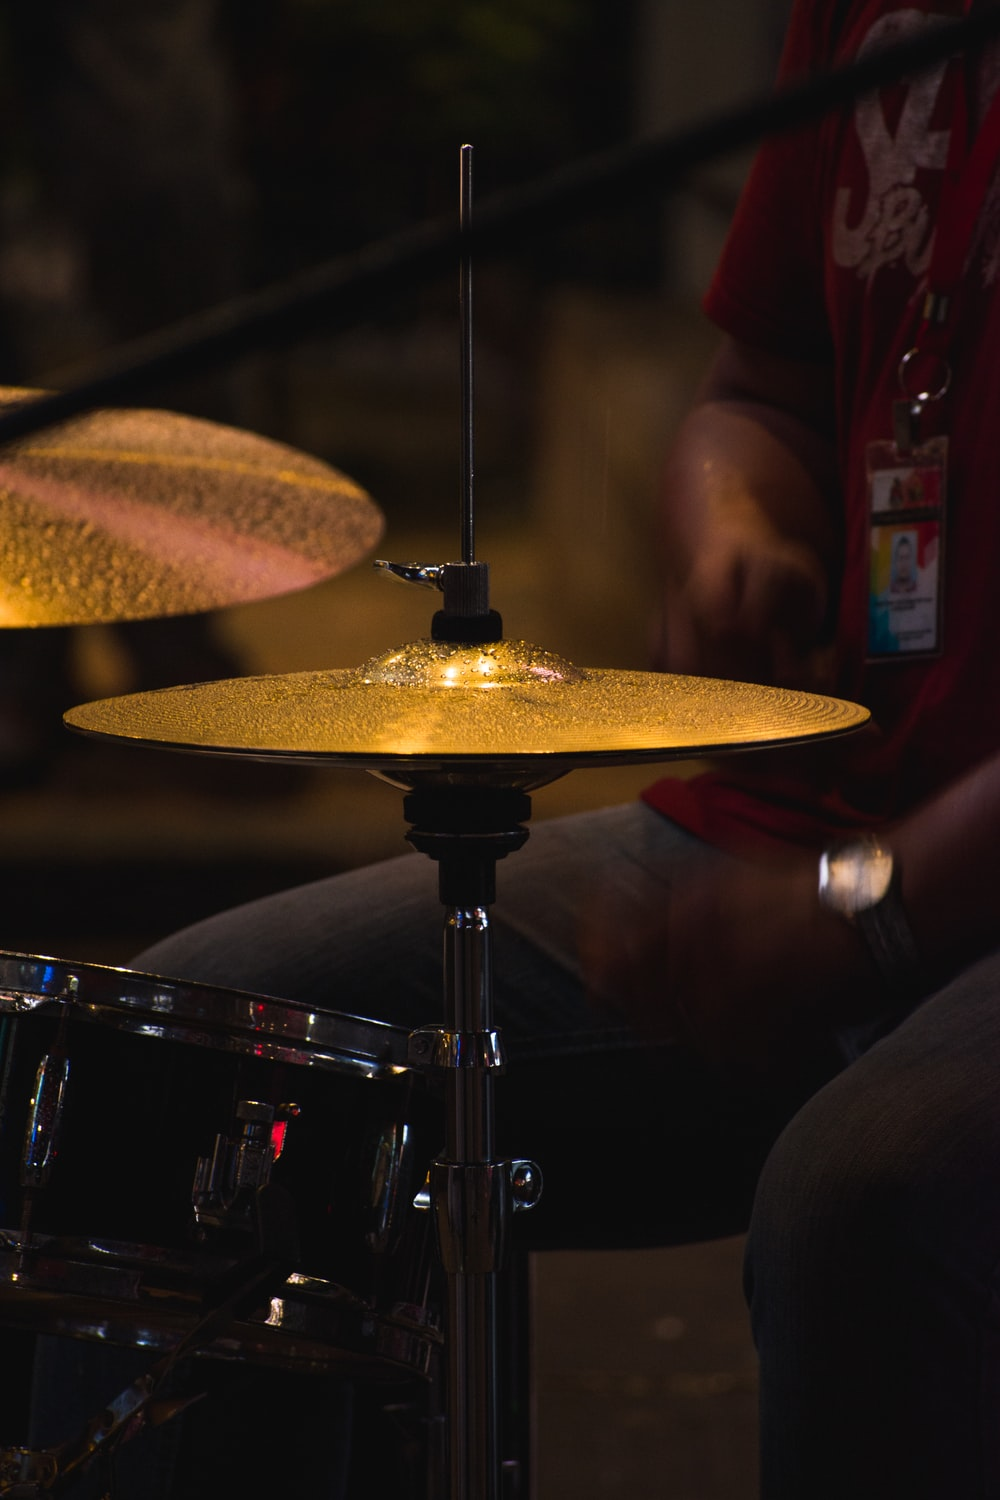 brown cymbals